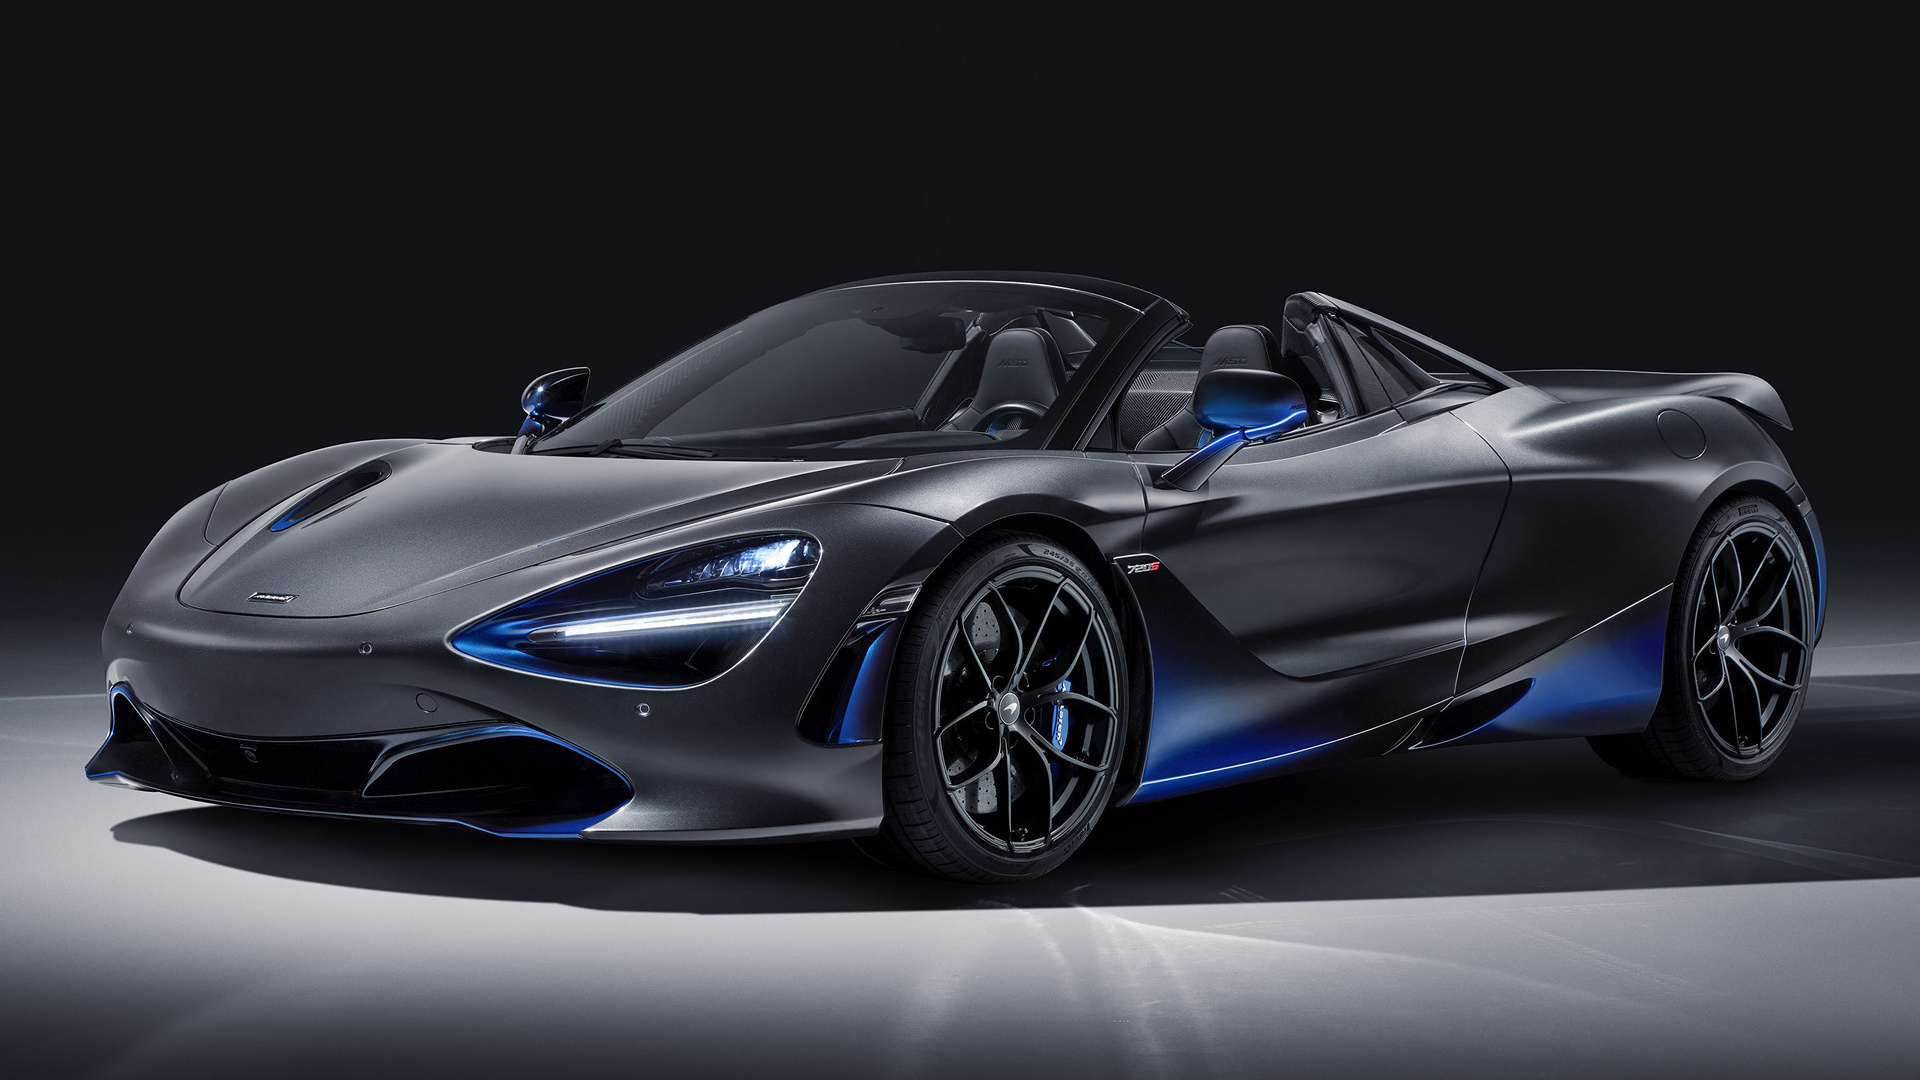 2019 McLaren 720S Spider by MSO - Wallpapers and HD Images | Car Pixel